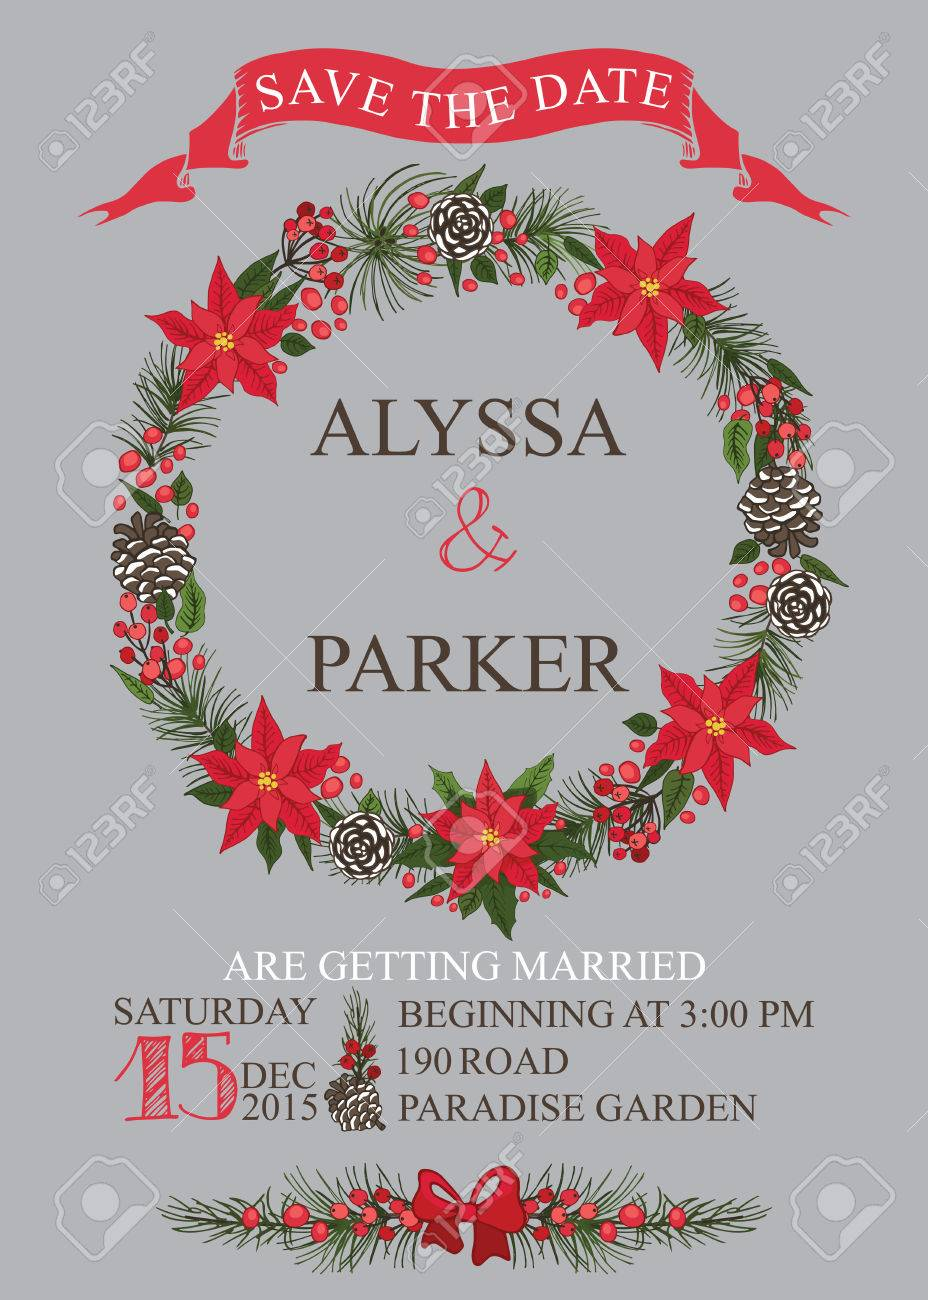 Winter Wedding Save The Date Card With Christmas Wreath,text,numbers ...